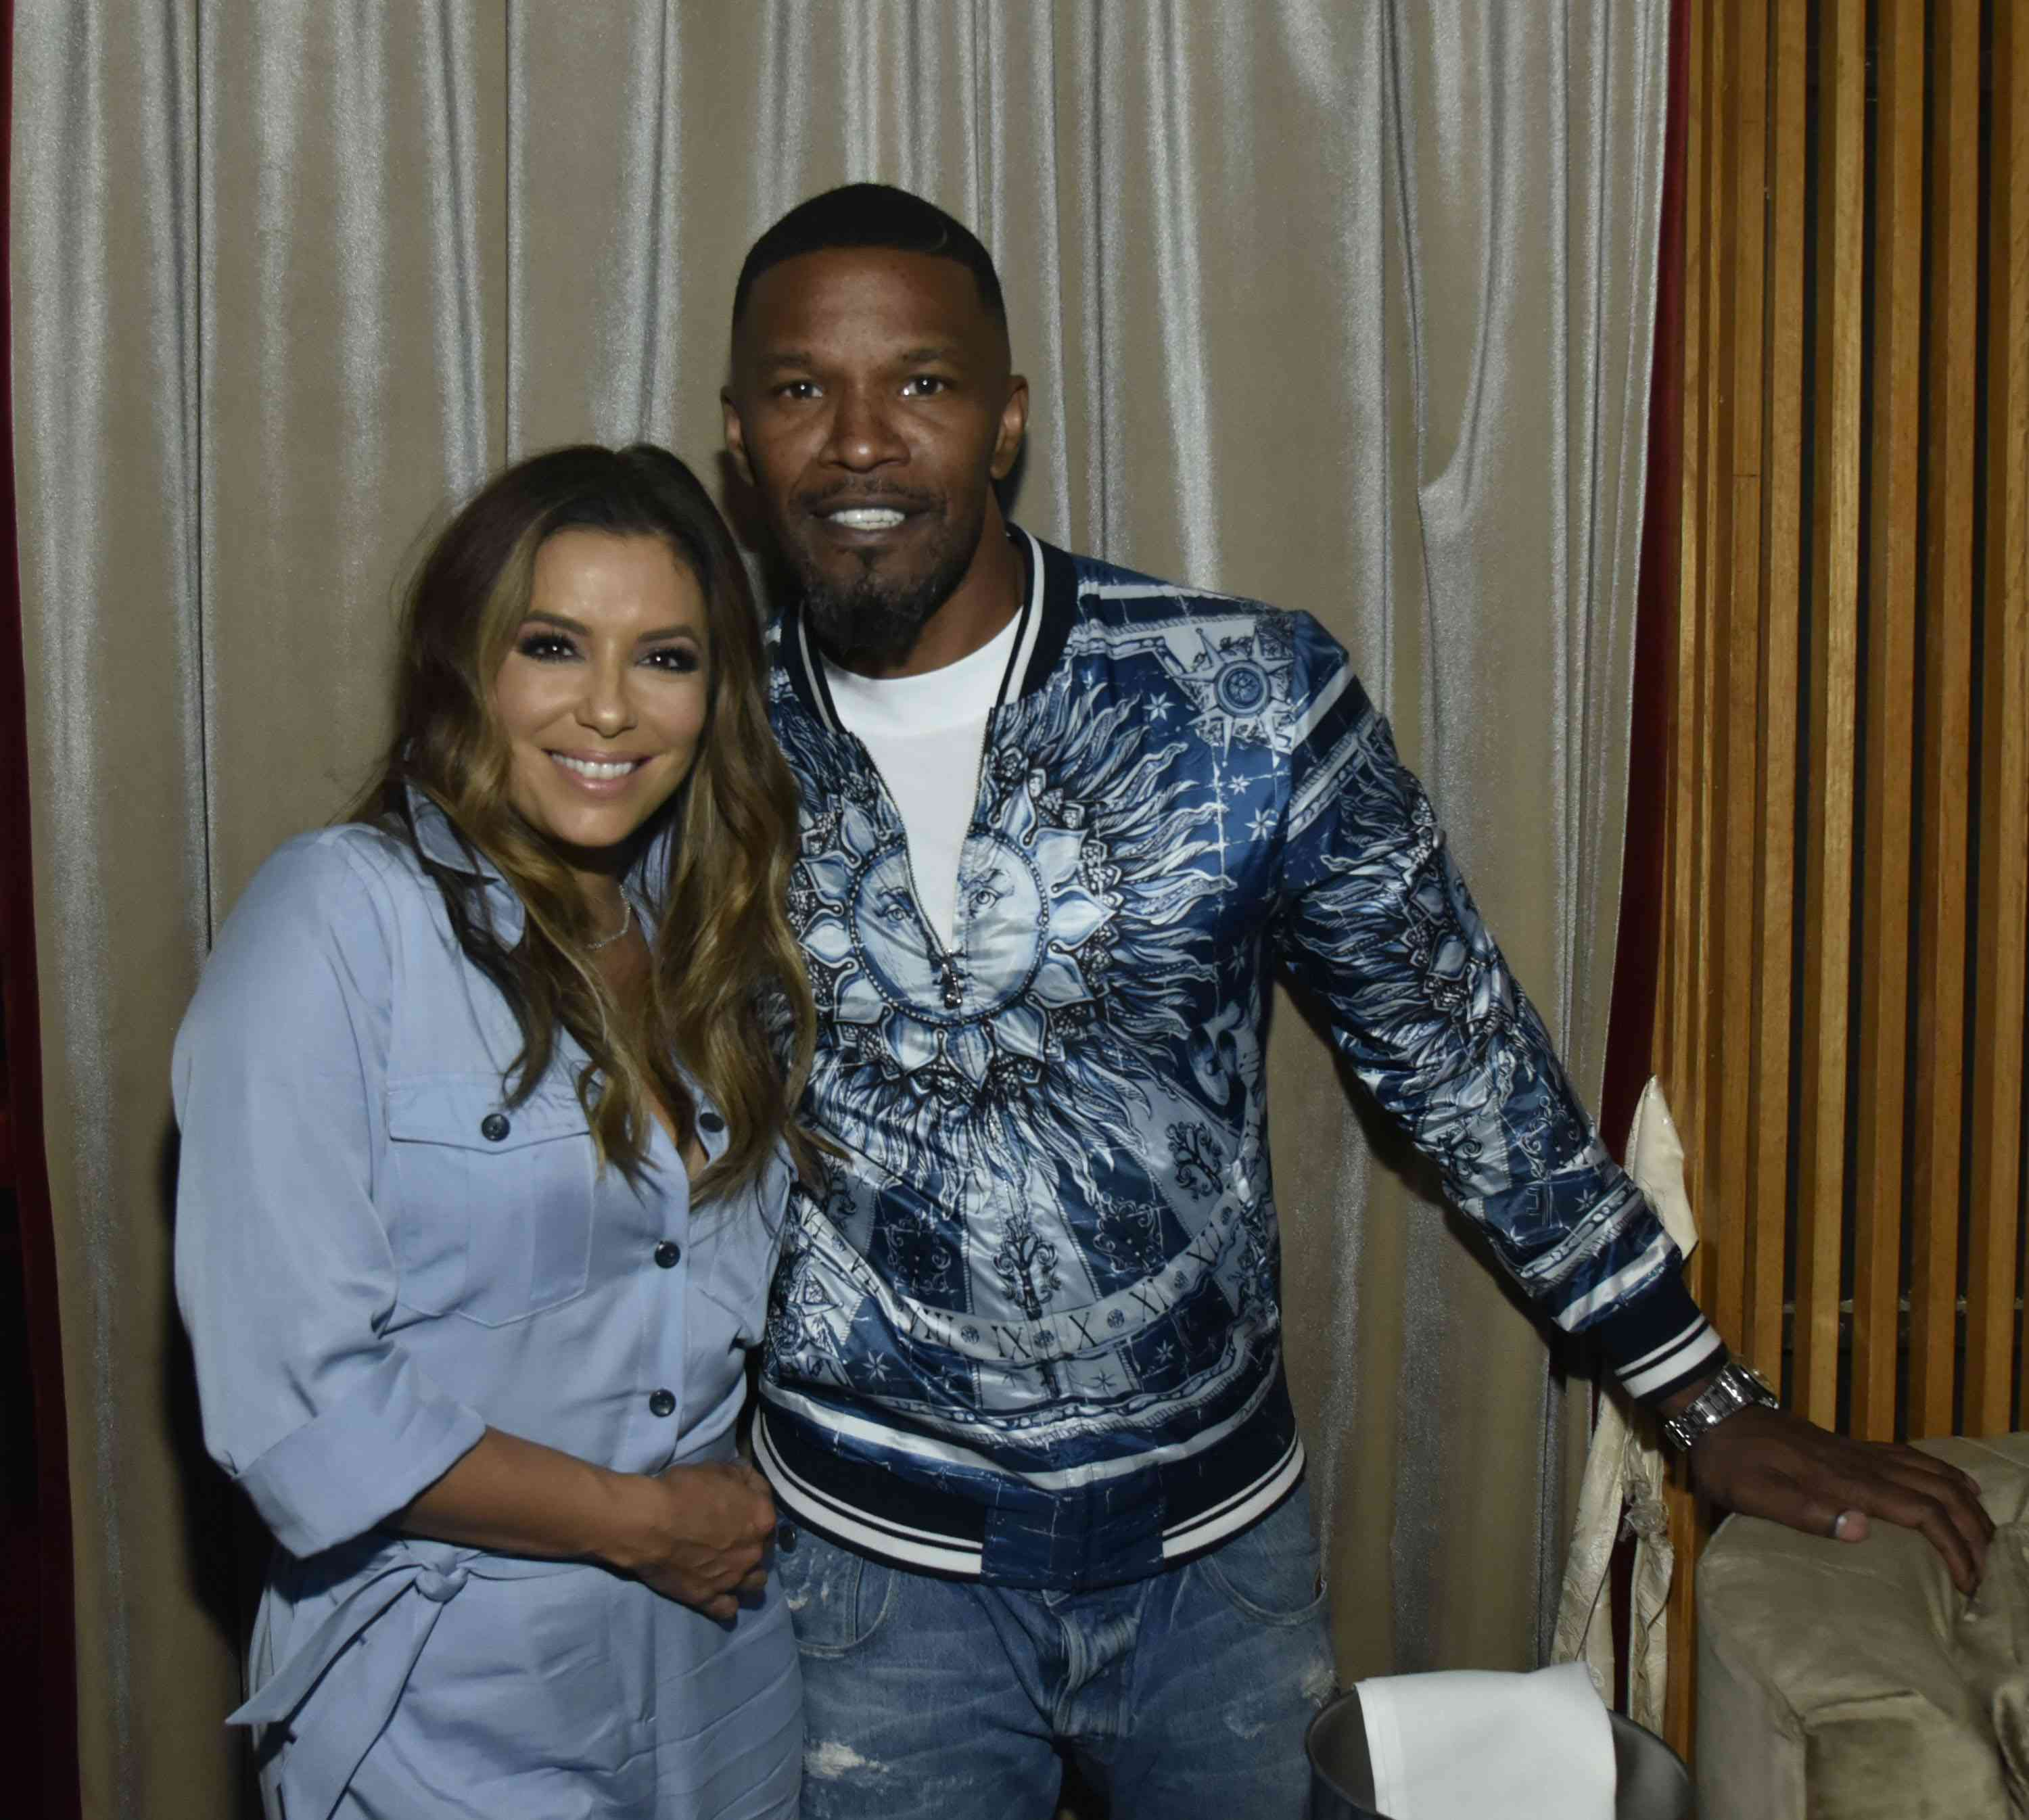 Jamie Foxx and Eva Longoria